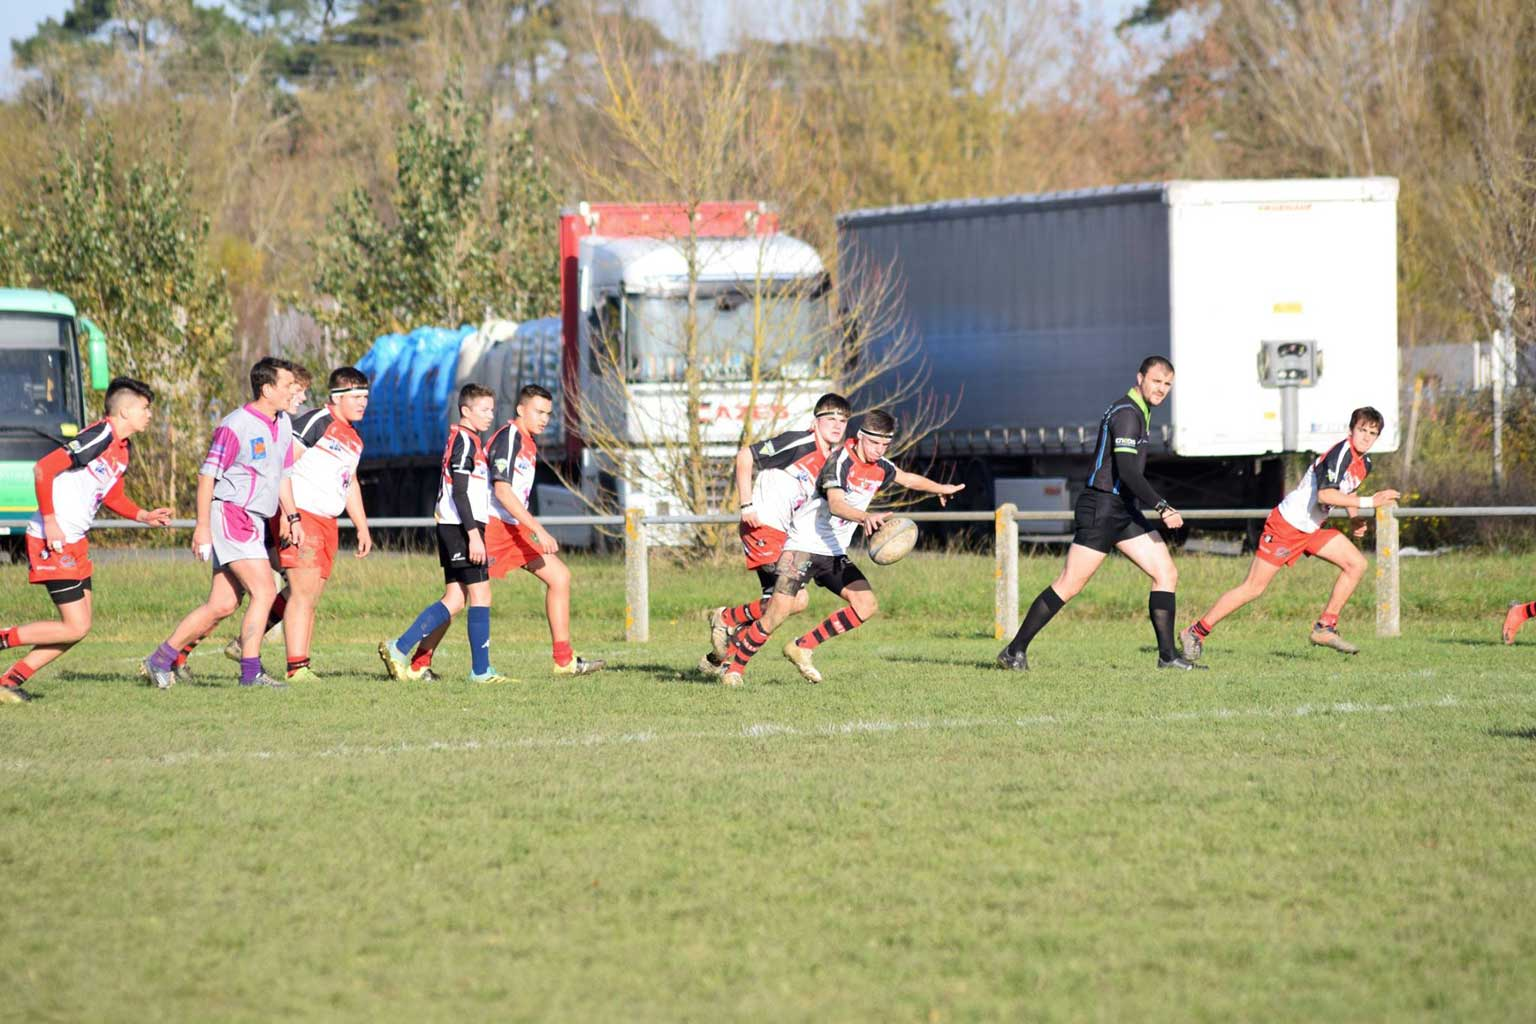 © Maeva Franco - U16 - Graulhet vs Alban/Valence/Lacaune - Photo 27